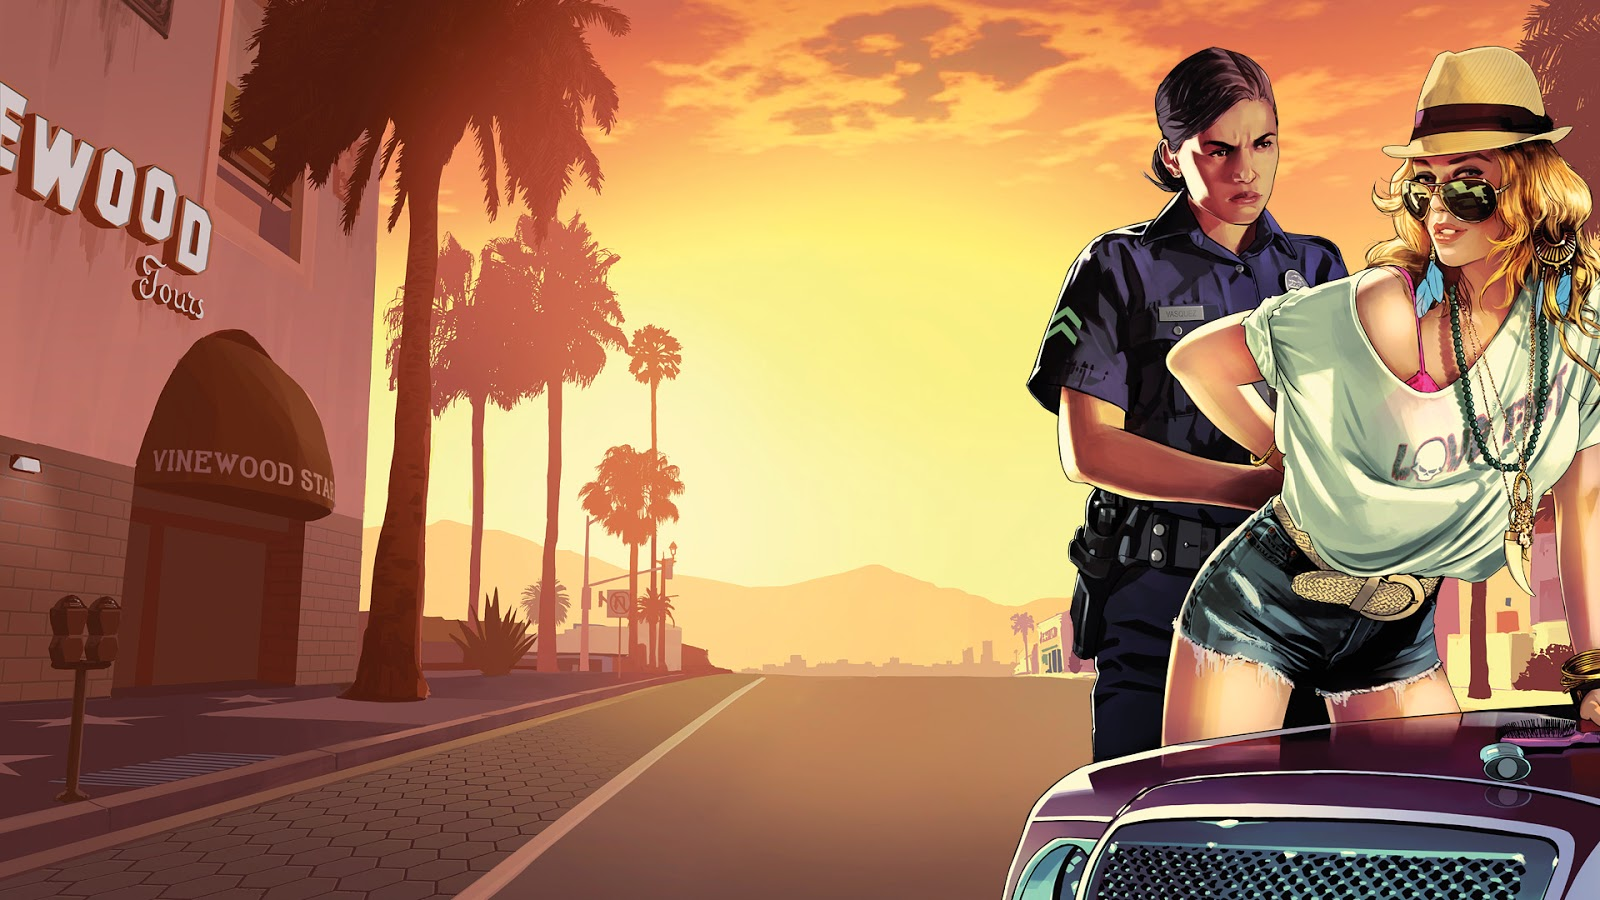 by LEAGUE OF FICTION Grand Theft Auto GTA 5 Desktop Wallpapers HD 1600x900